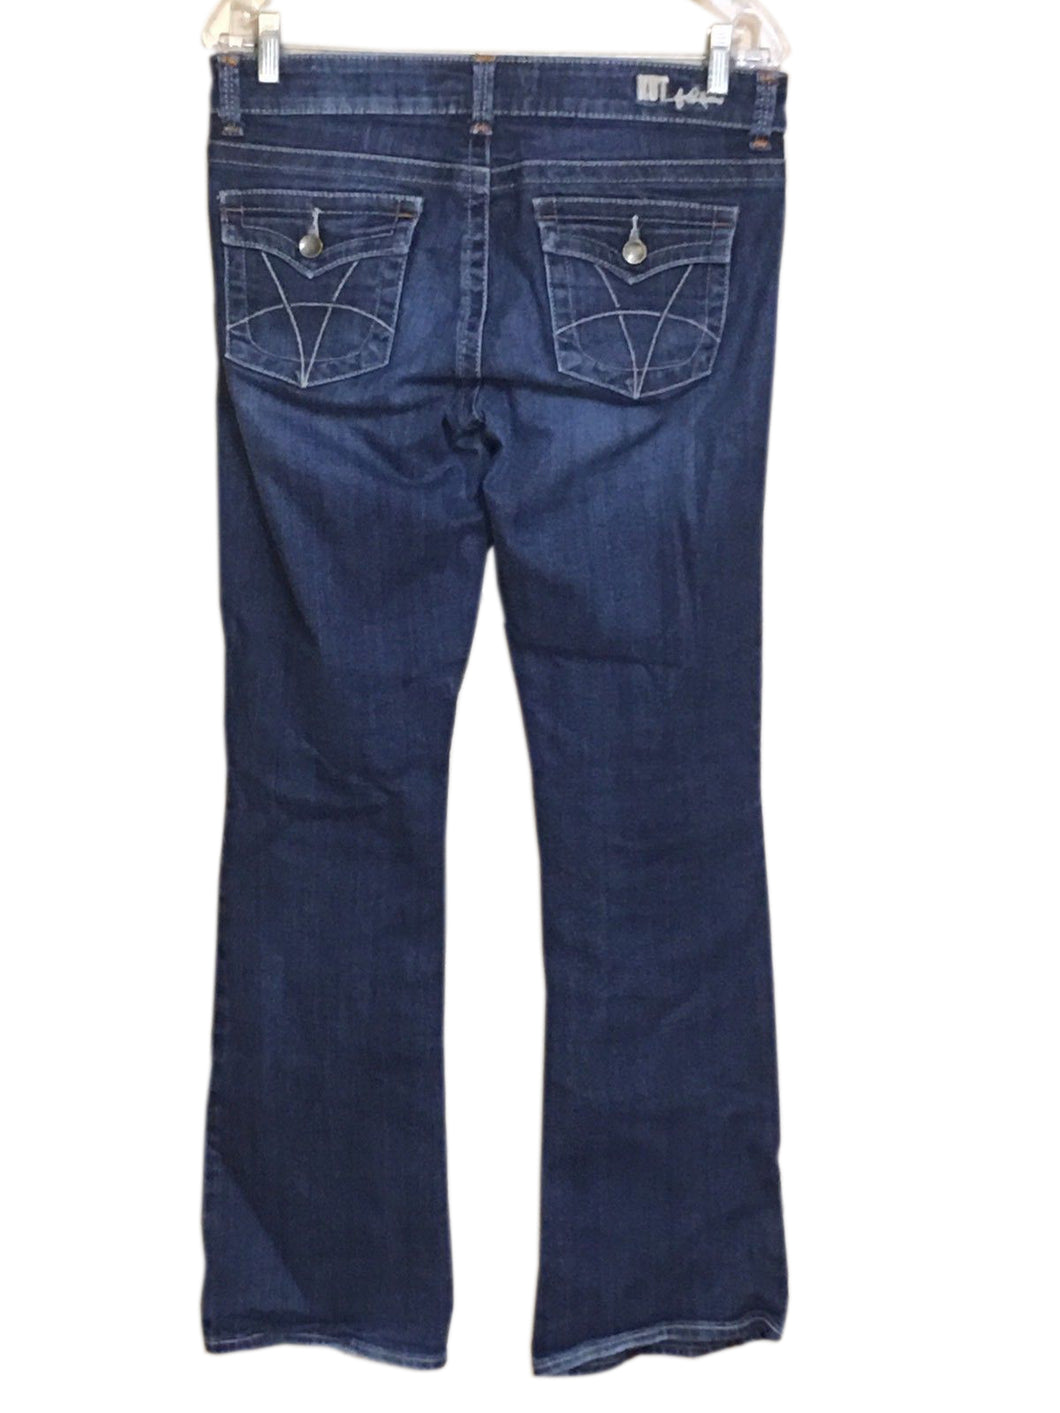 Kut From The Kloth Jeans Natalie High Rise Bootcut Flap Pocket KP881MA1 Womens 6-Preowned - FunkyCrap Boutique